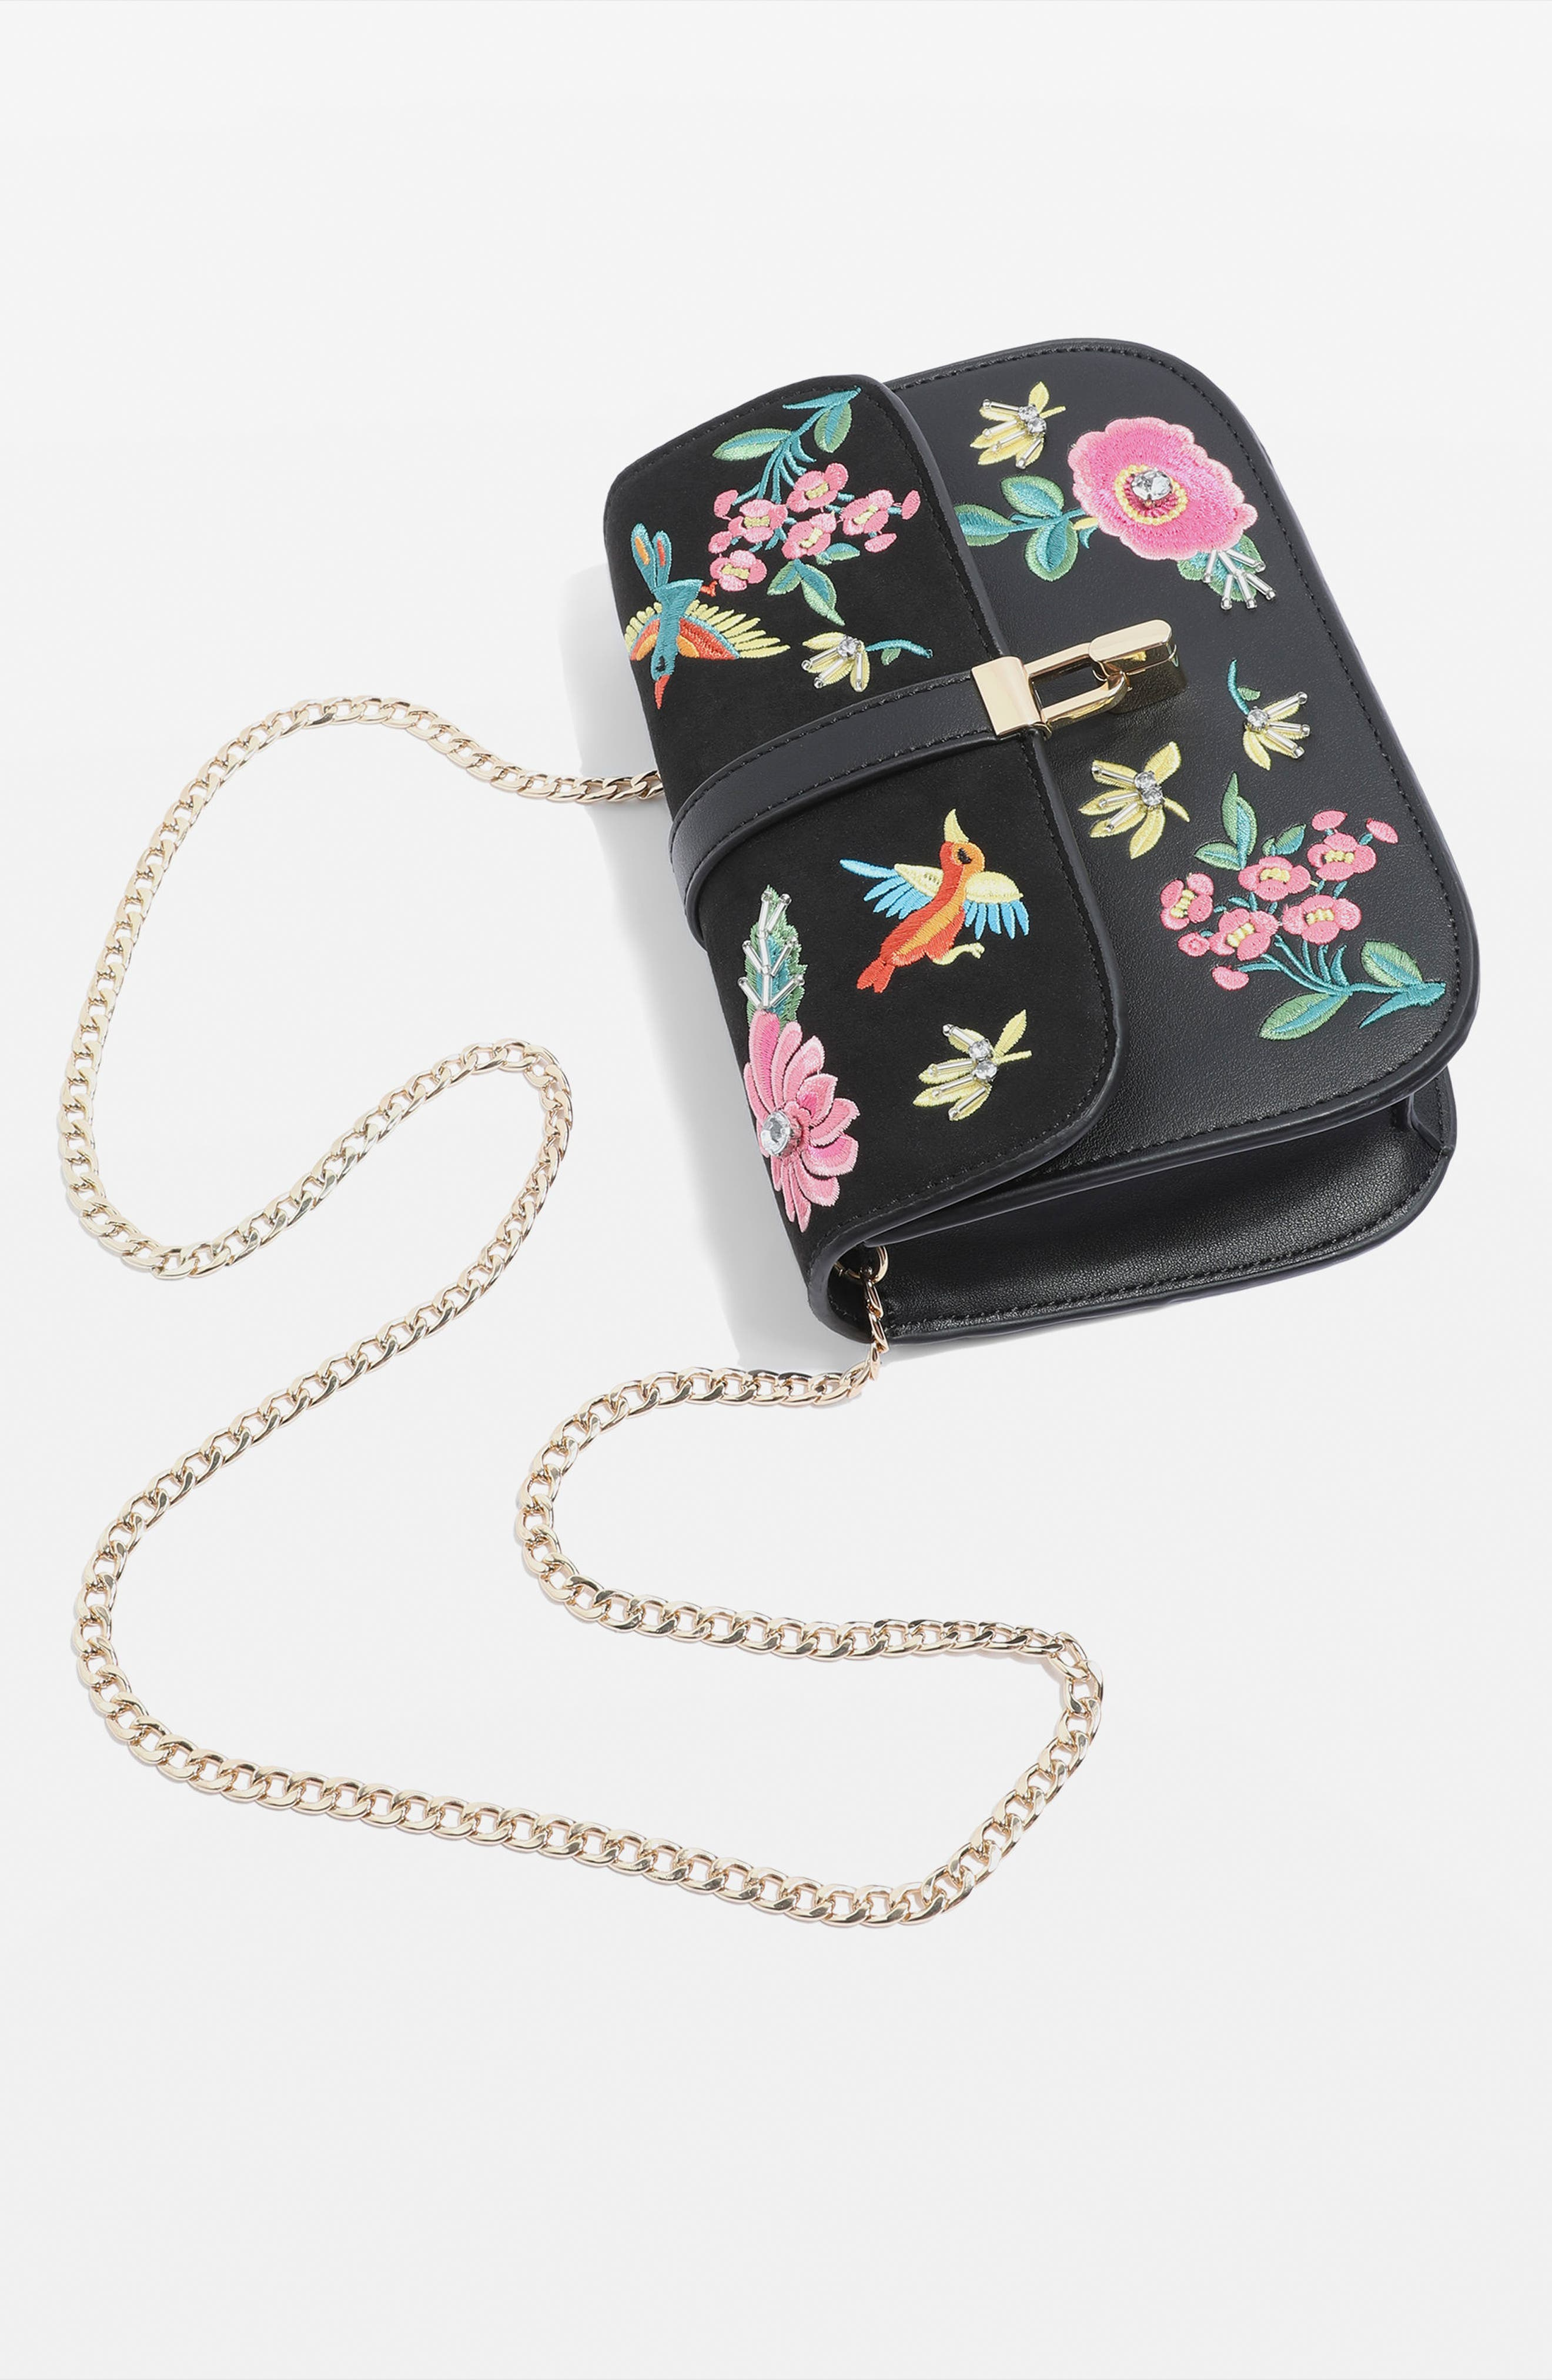 Hummingbird Embroidered Crossbody Bag,                             Alternate thumbnail 4, color,                             001